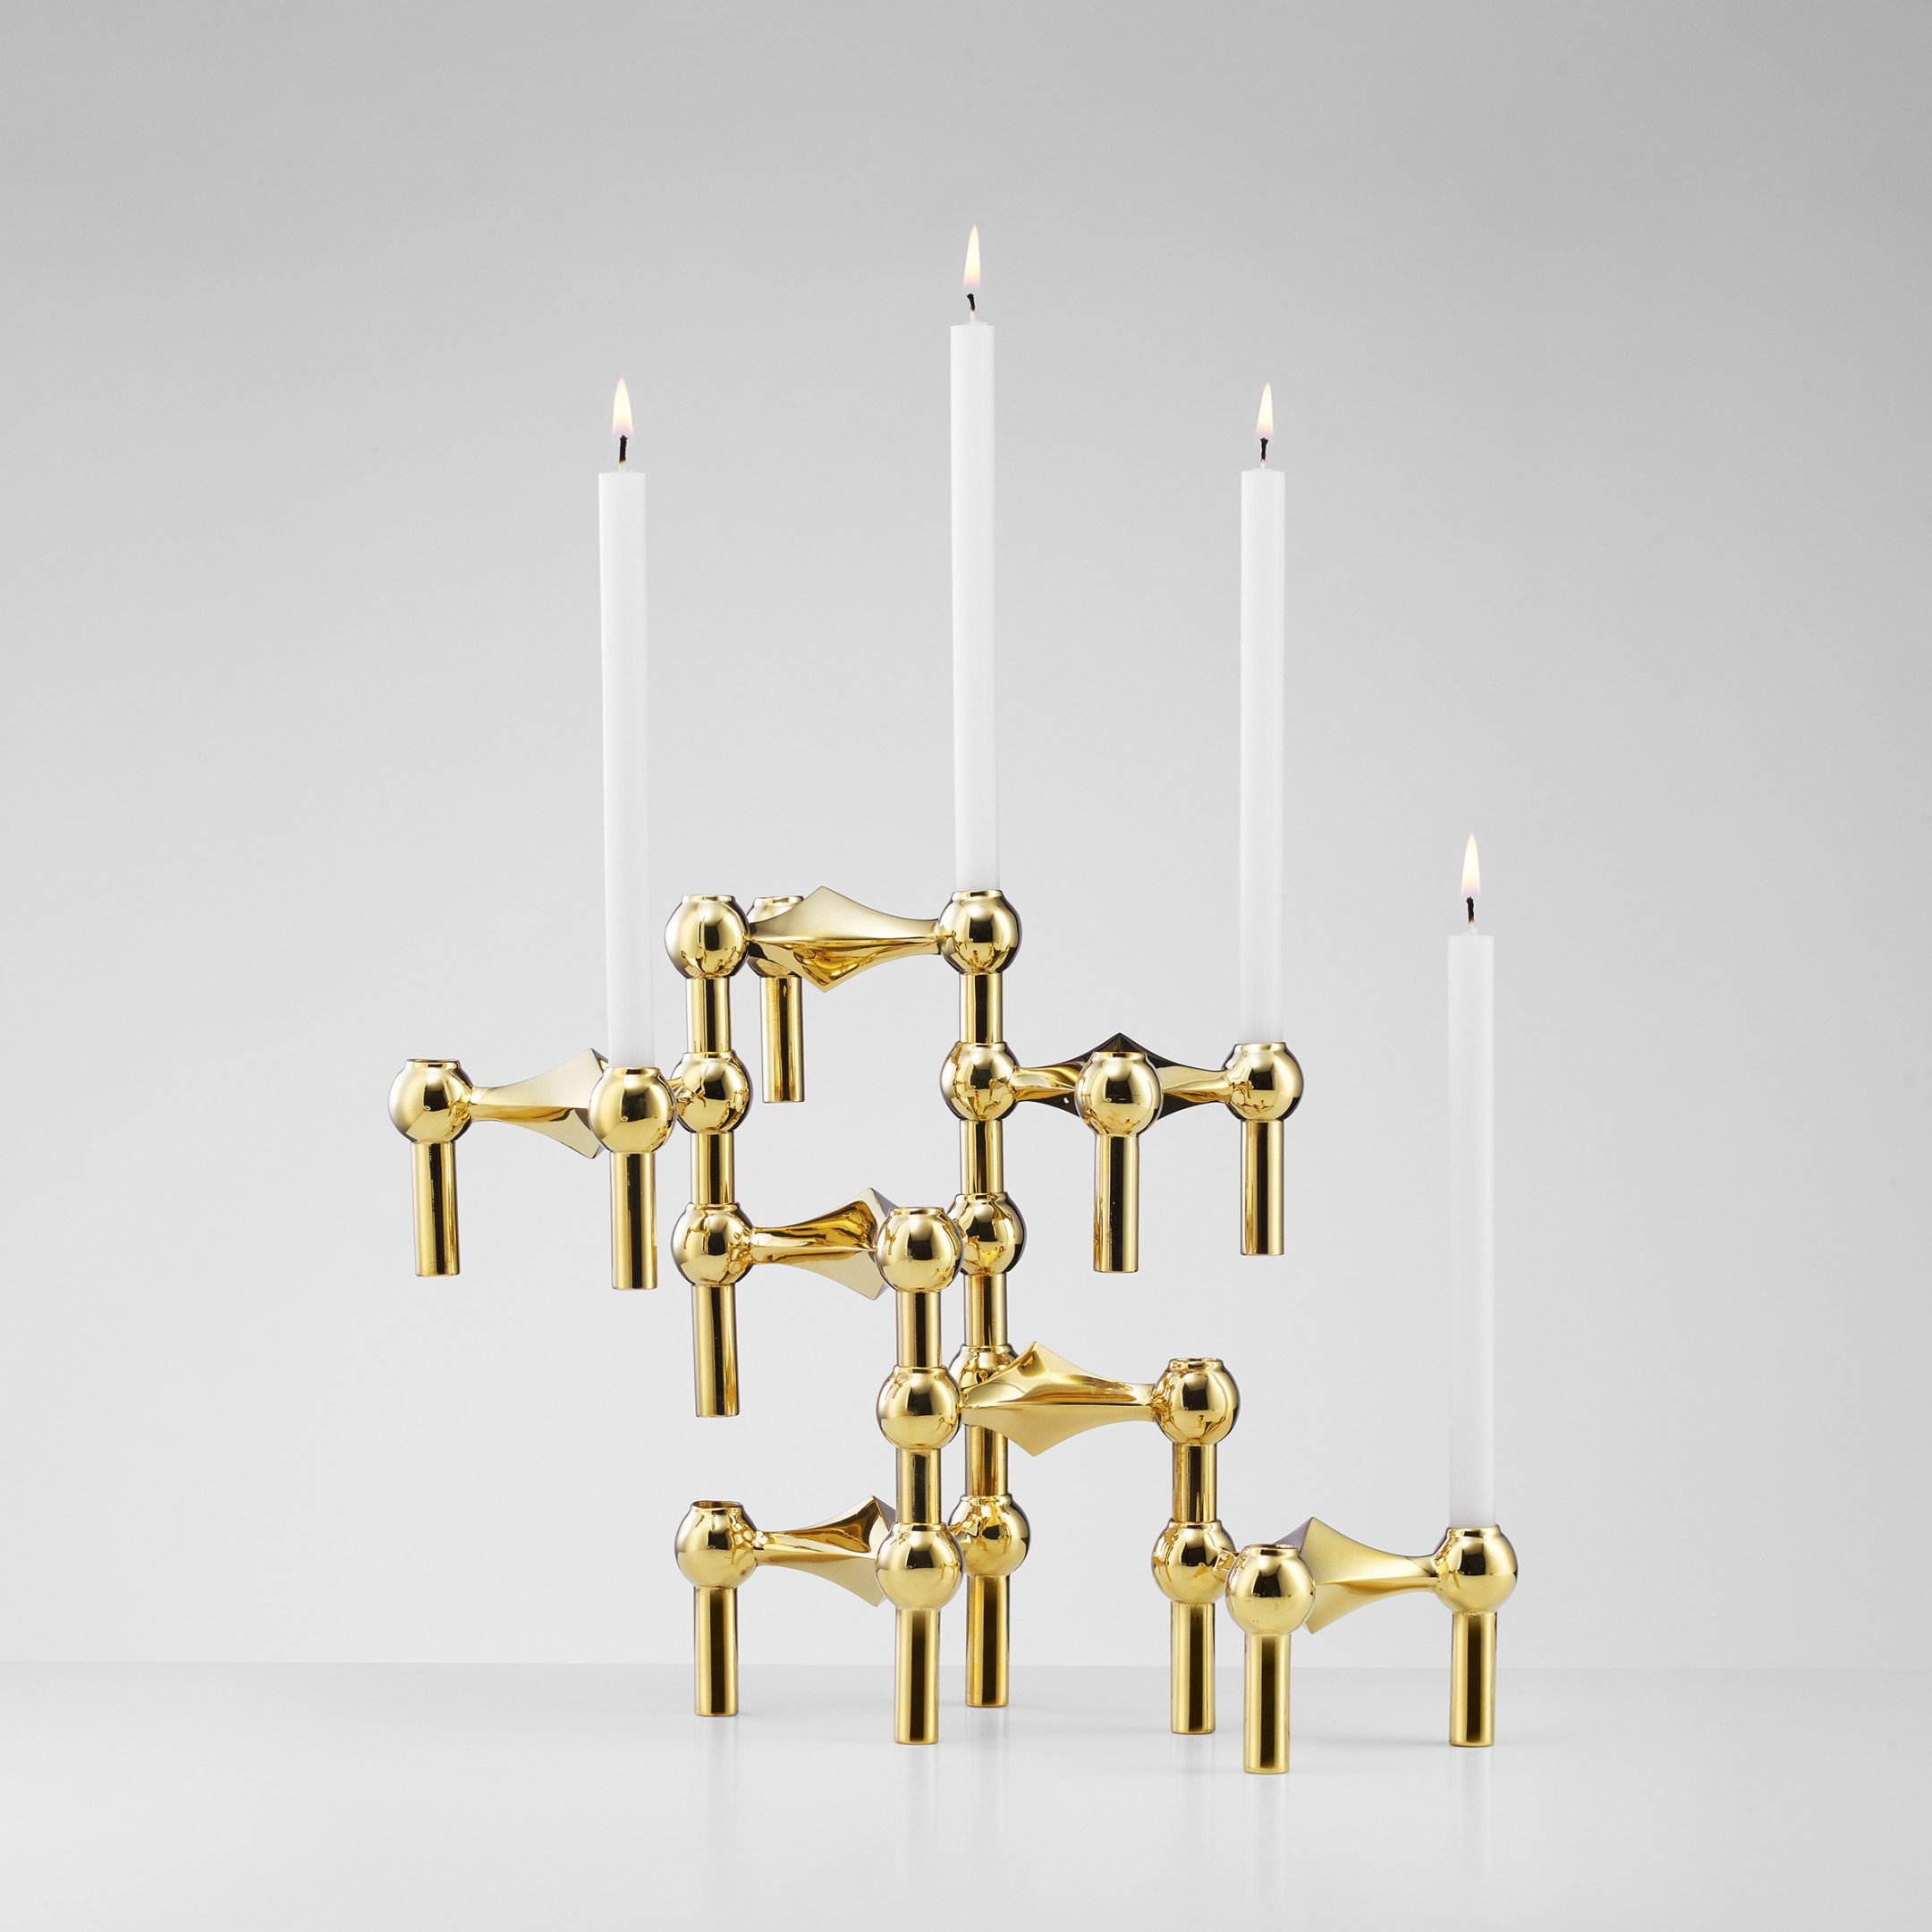 Set of Three Brass Candle Holders by W. Stoff & H. Nagel, Stoff